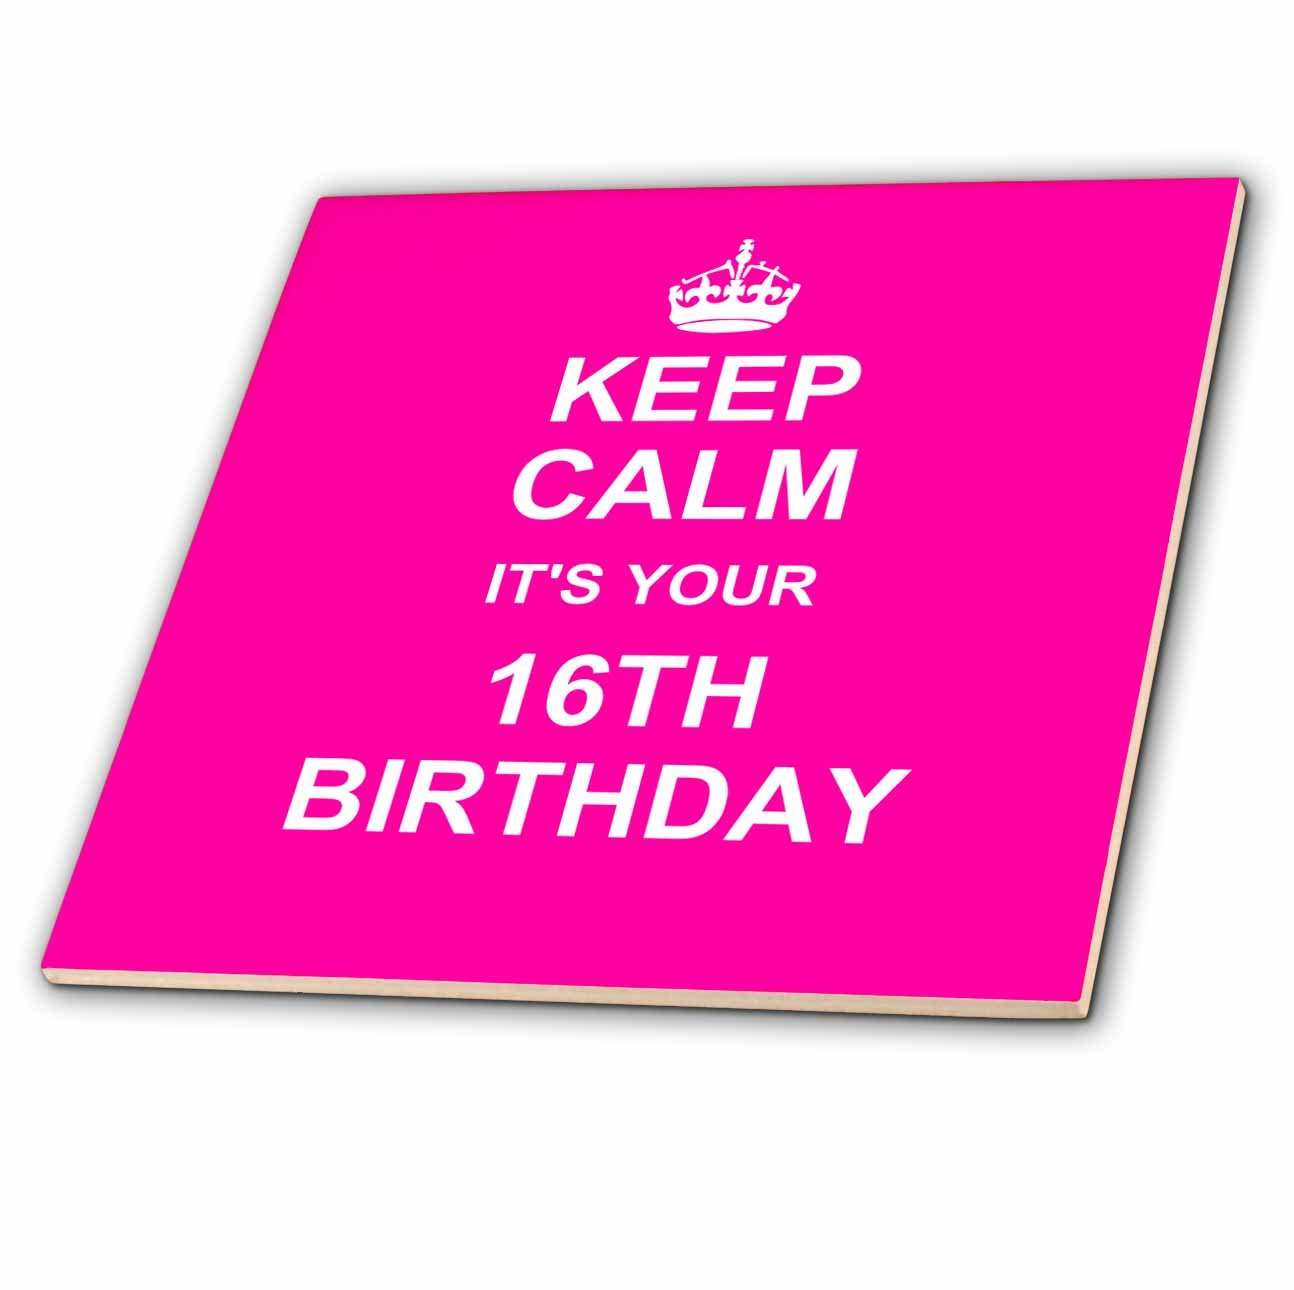 3dRose ct/_157649/_2 Keep Calm Its Your 16th Birthday Hot Pink Girly Girls Fun Stay Calm About Turning Sweet Sixteen Ceramic Tile 6-Inch